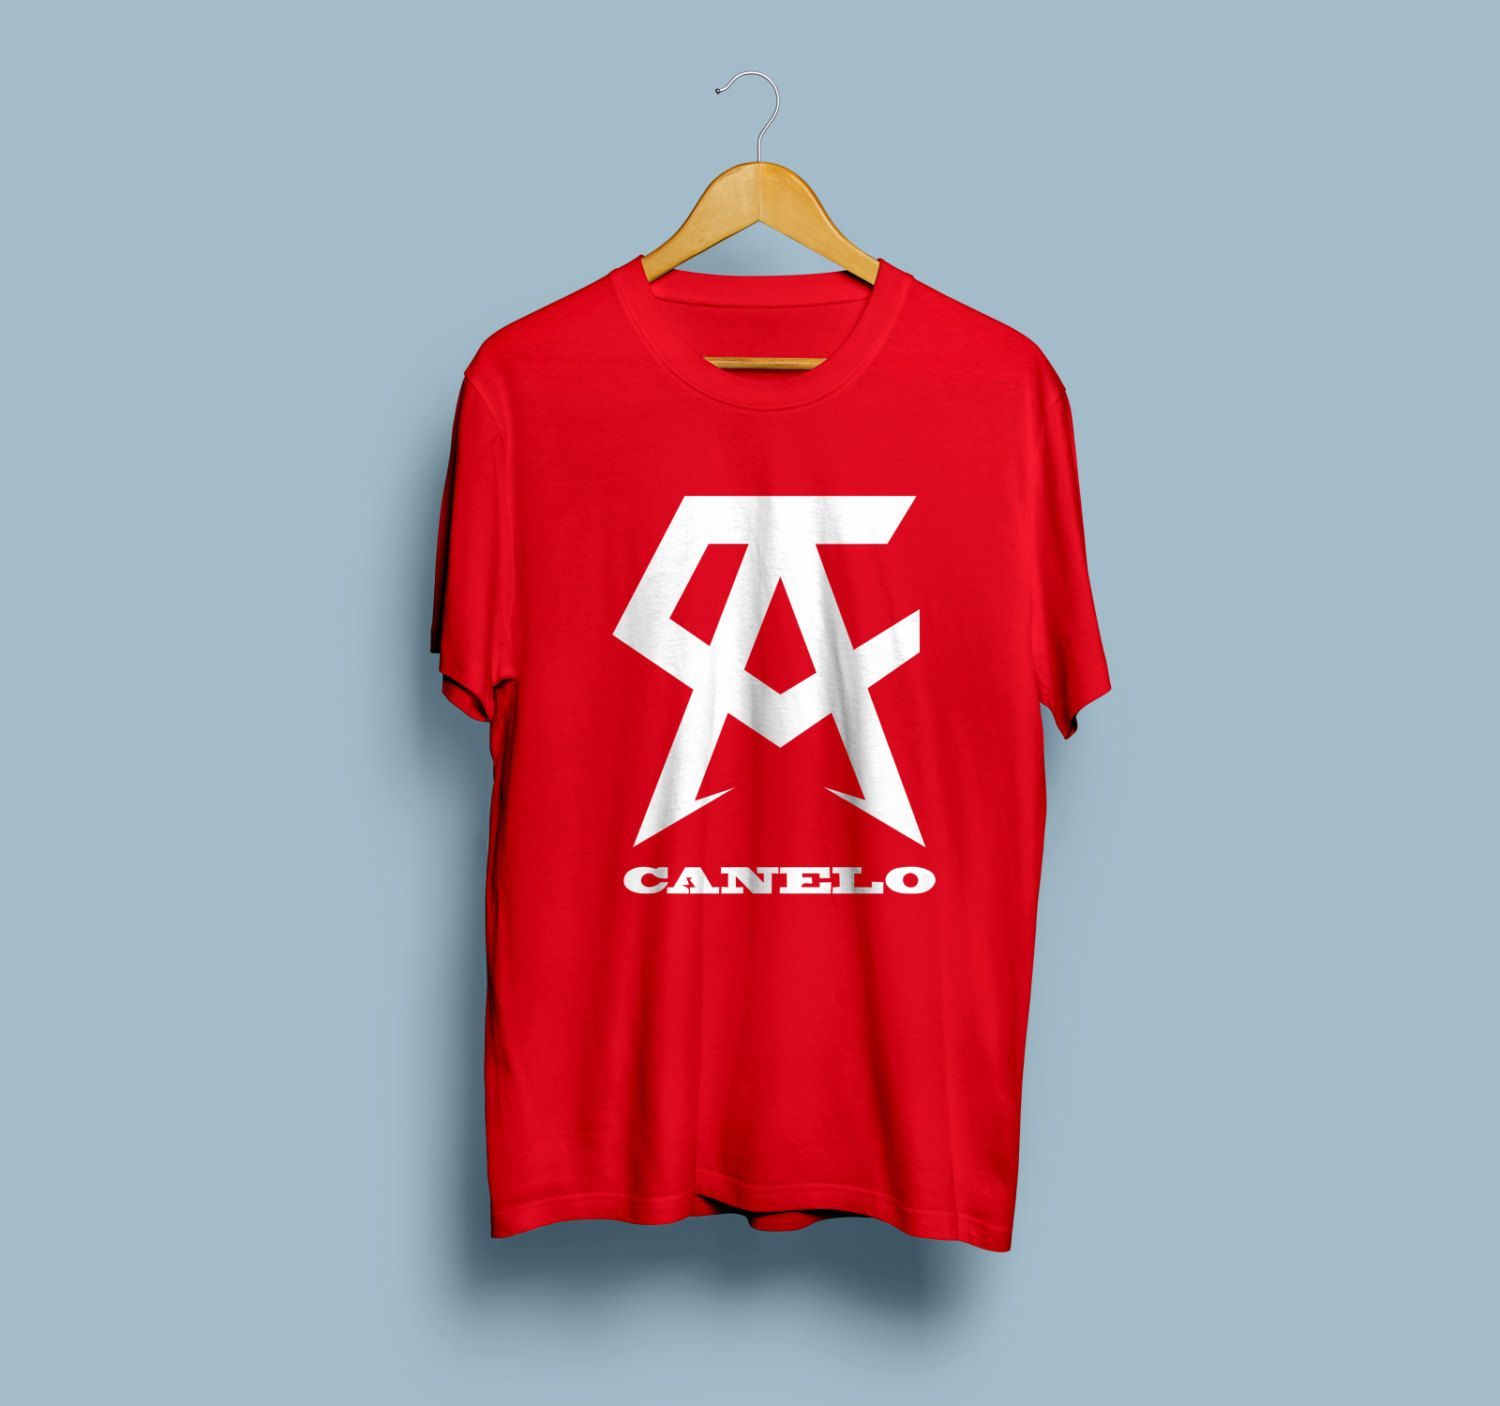 d1901ca1 Saul Canelo Alvarez Boxing Shirt S-4XL Available FREE SHIPPING Order By  Sept 12…